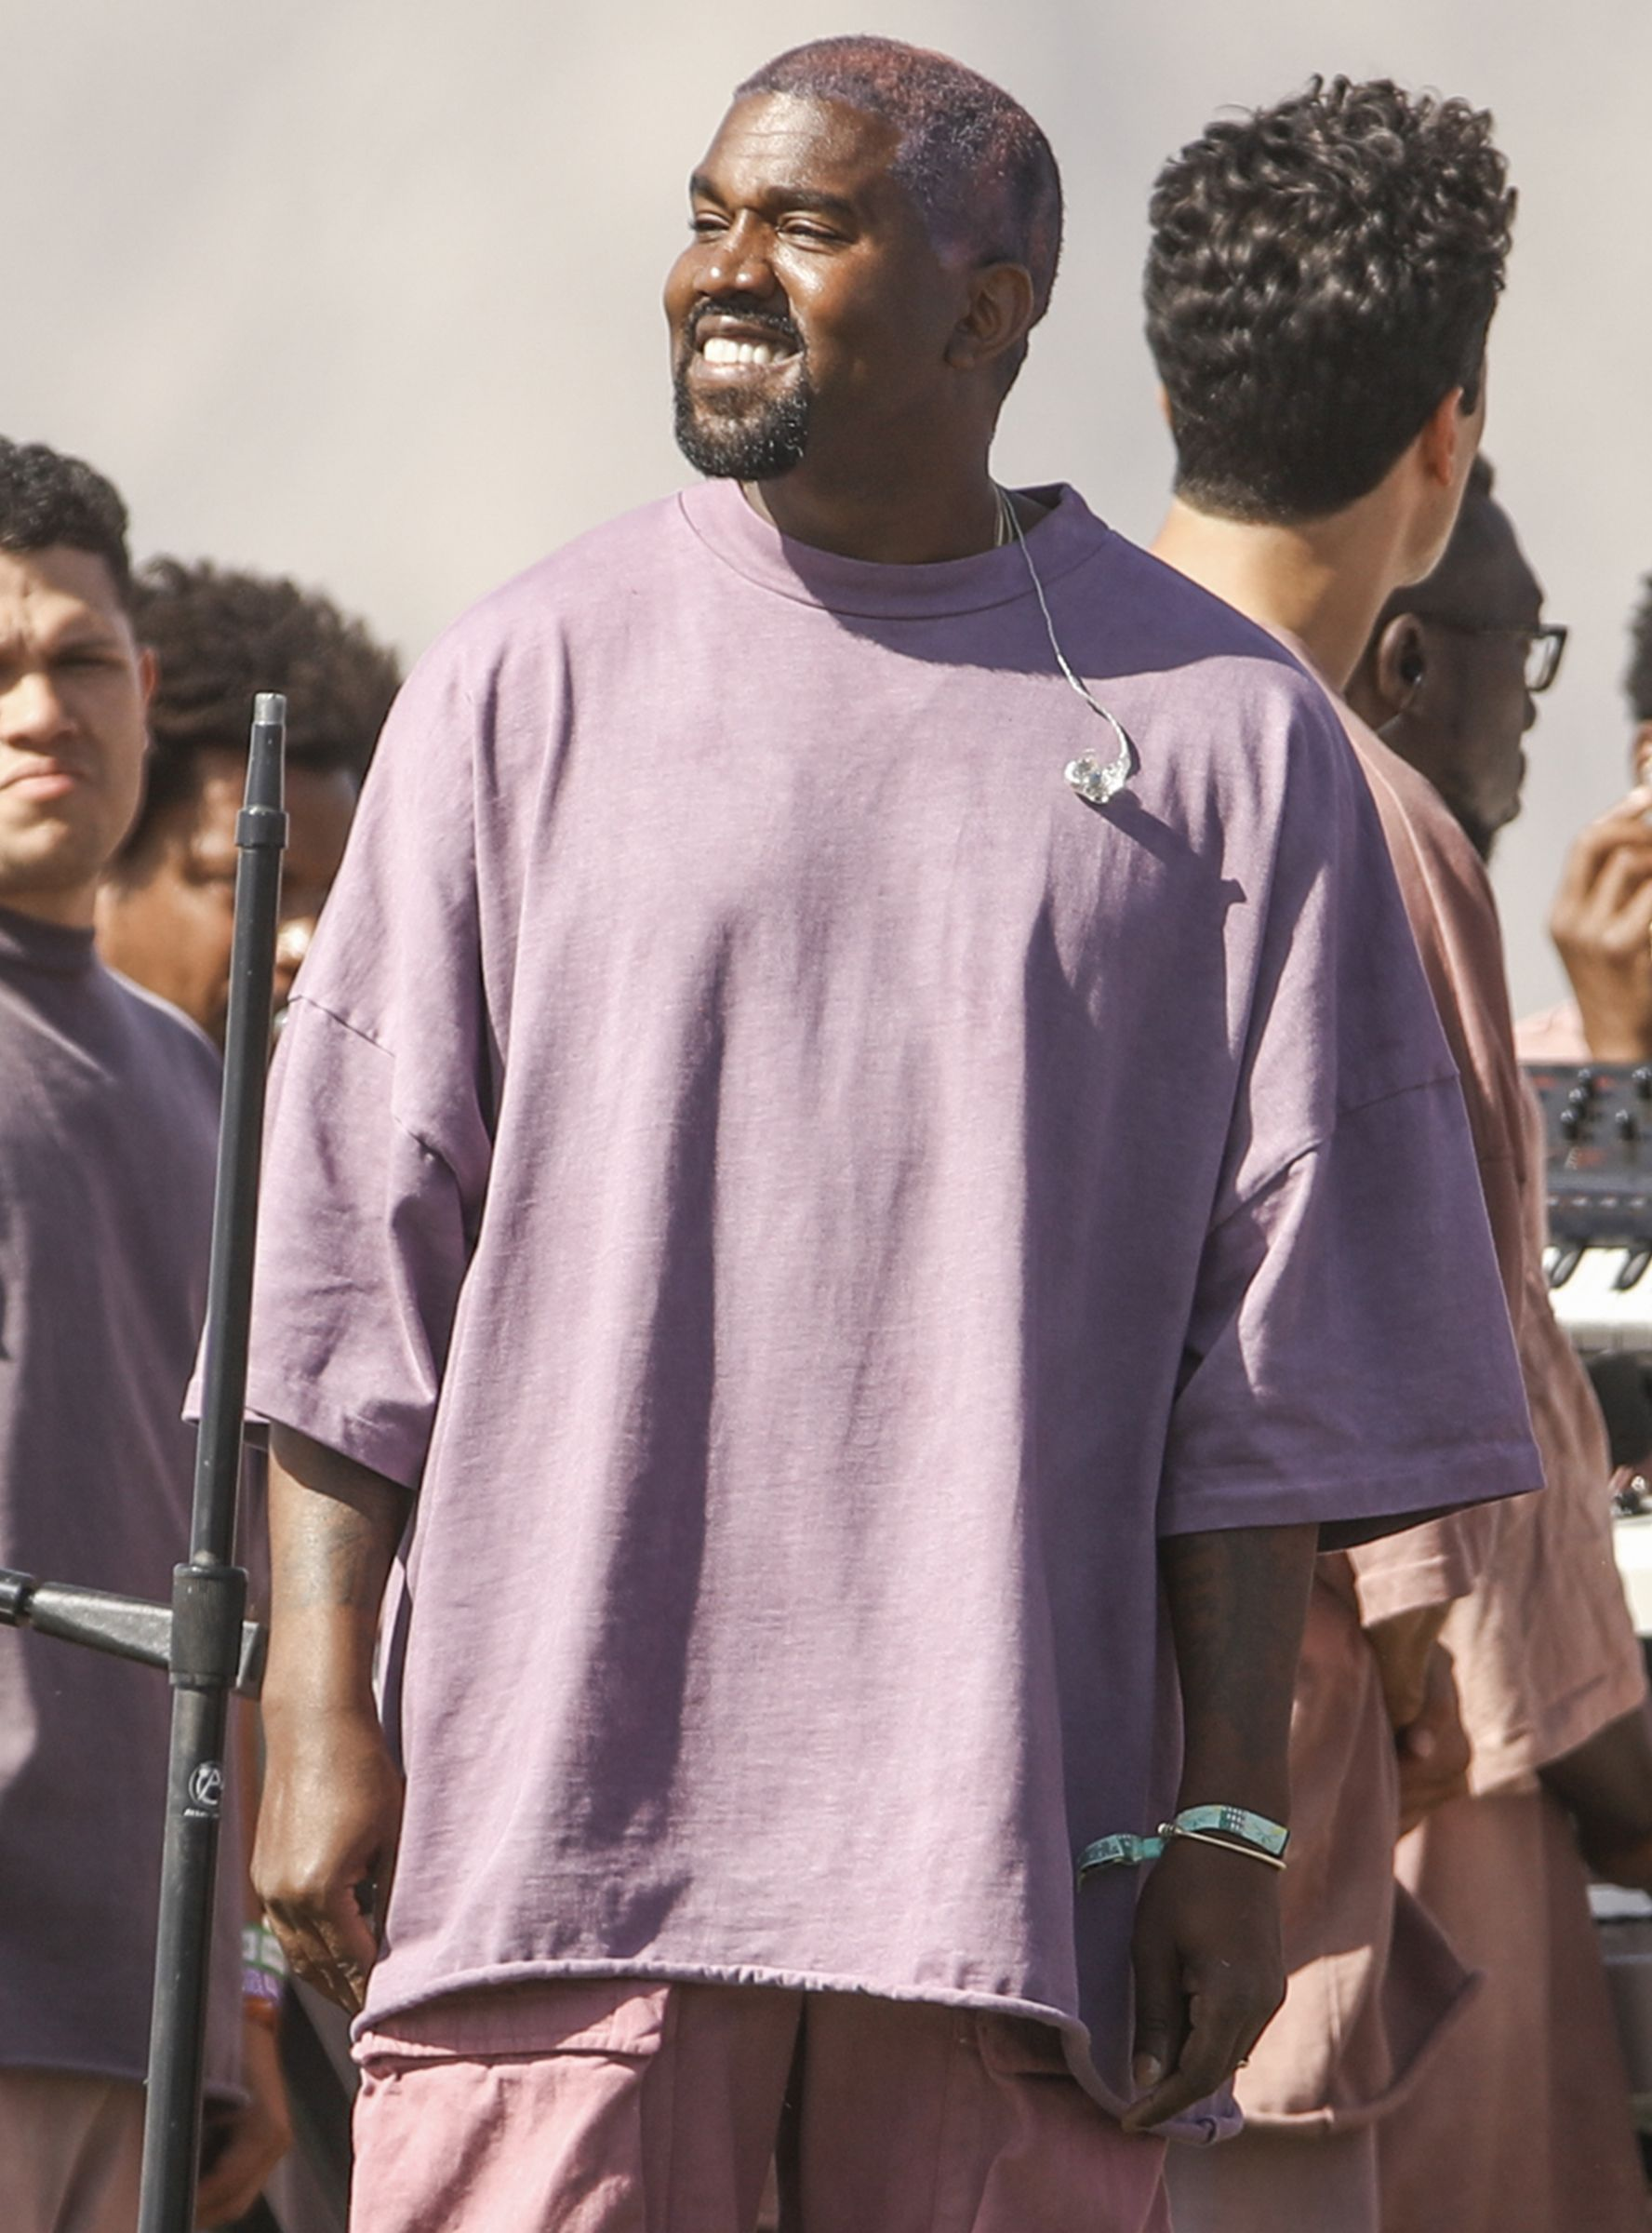 Kanye West Is Selling Church Themed Coachella Merch The Internet Has Thoughts In 2020 Kanye West Style Kanye West Kanye West Songs